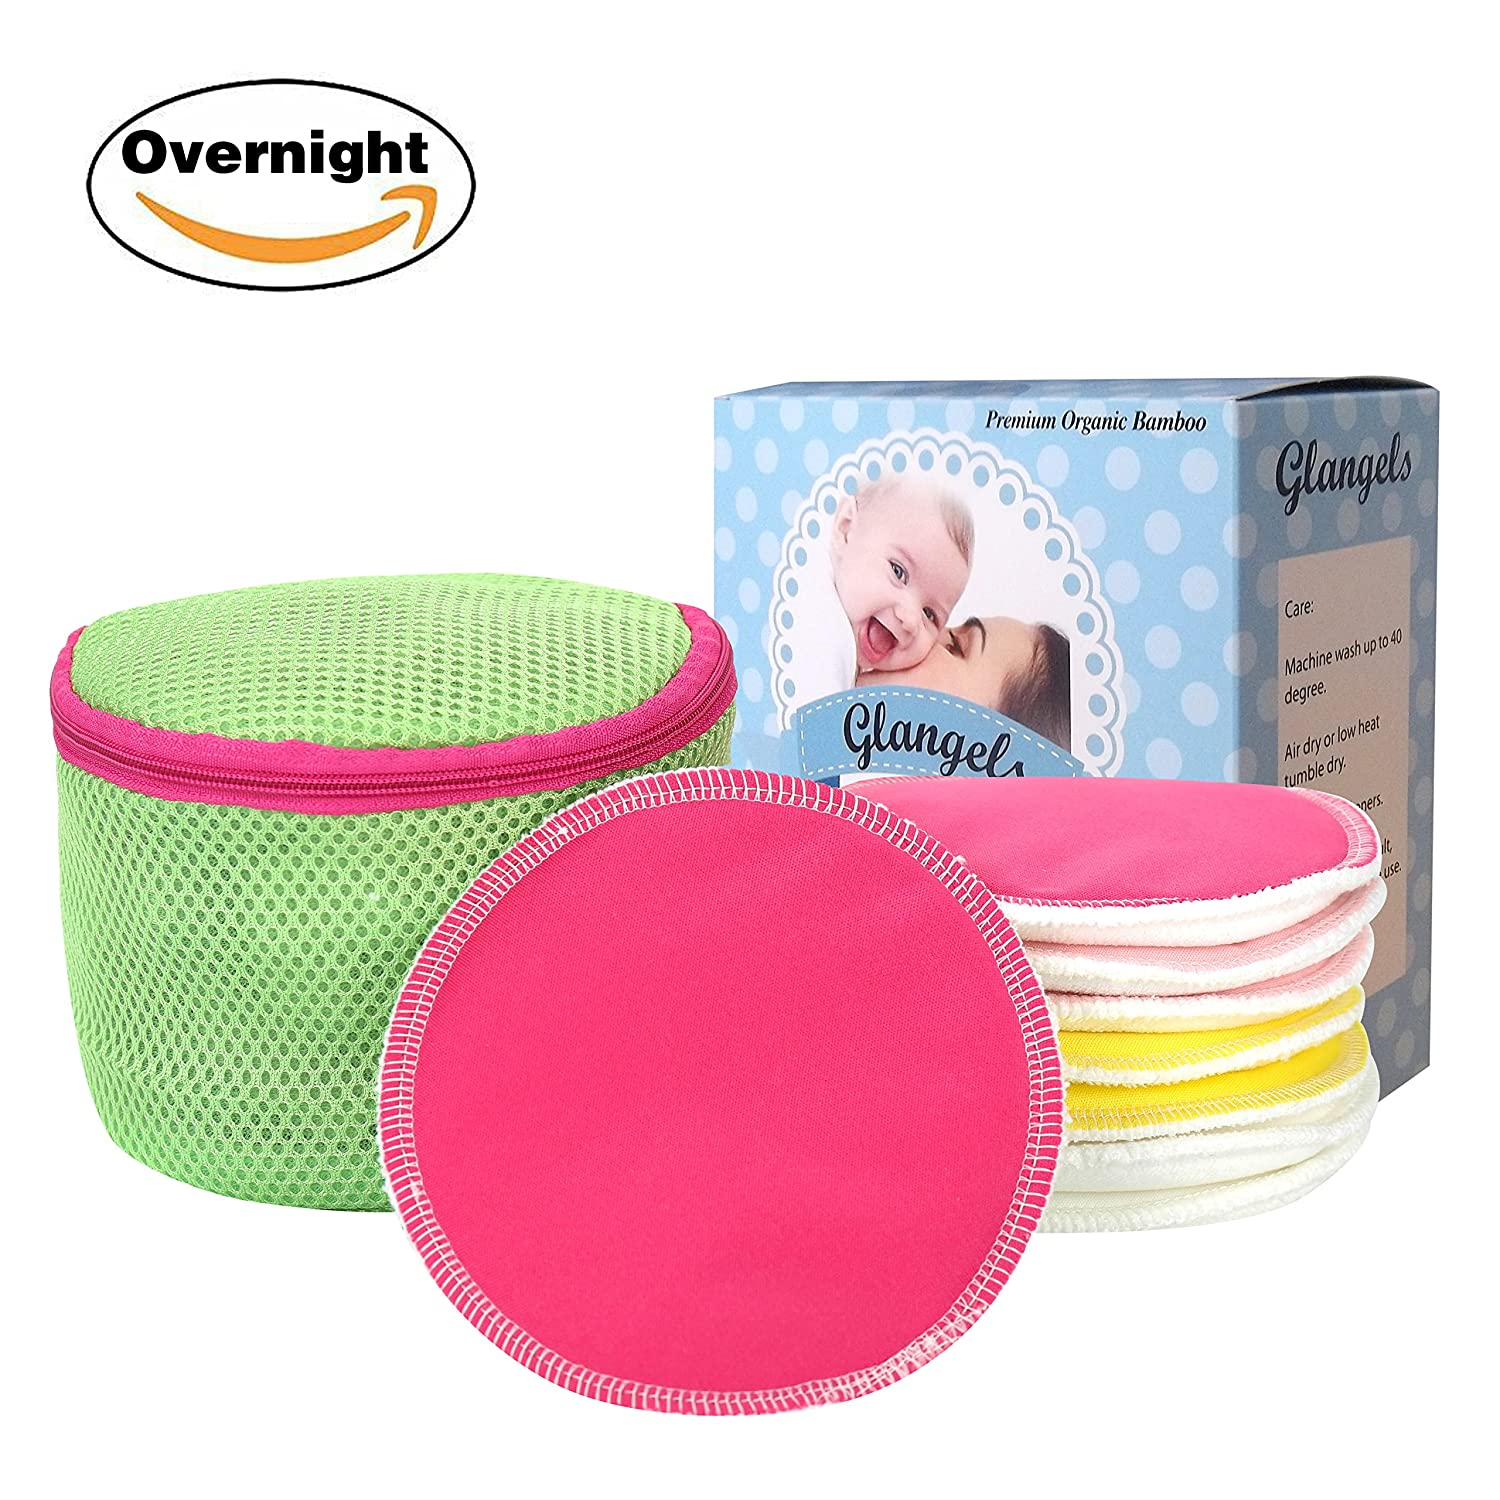 Glangels Thick Overnight Organic Washable& Reusable Nursing Pads, Super Soft Hypoallergenic Antibacterial Bamboo Breastfeeding Pads, Soothes Sensitive Nipple +Free Laundry Bag